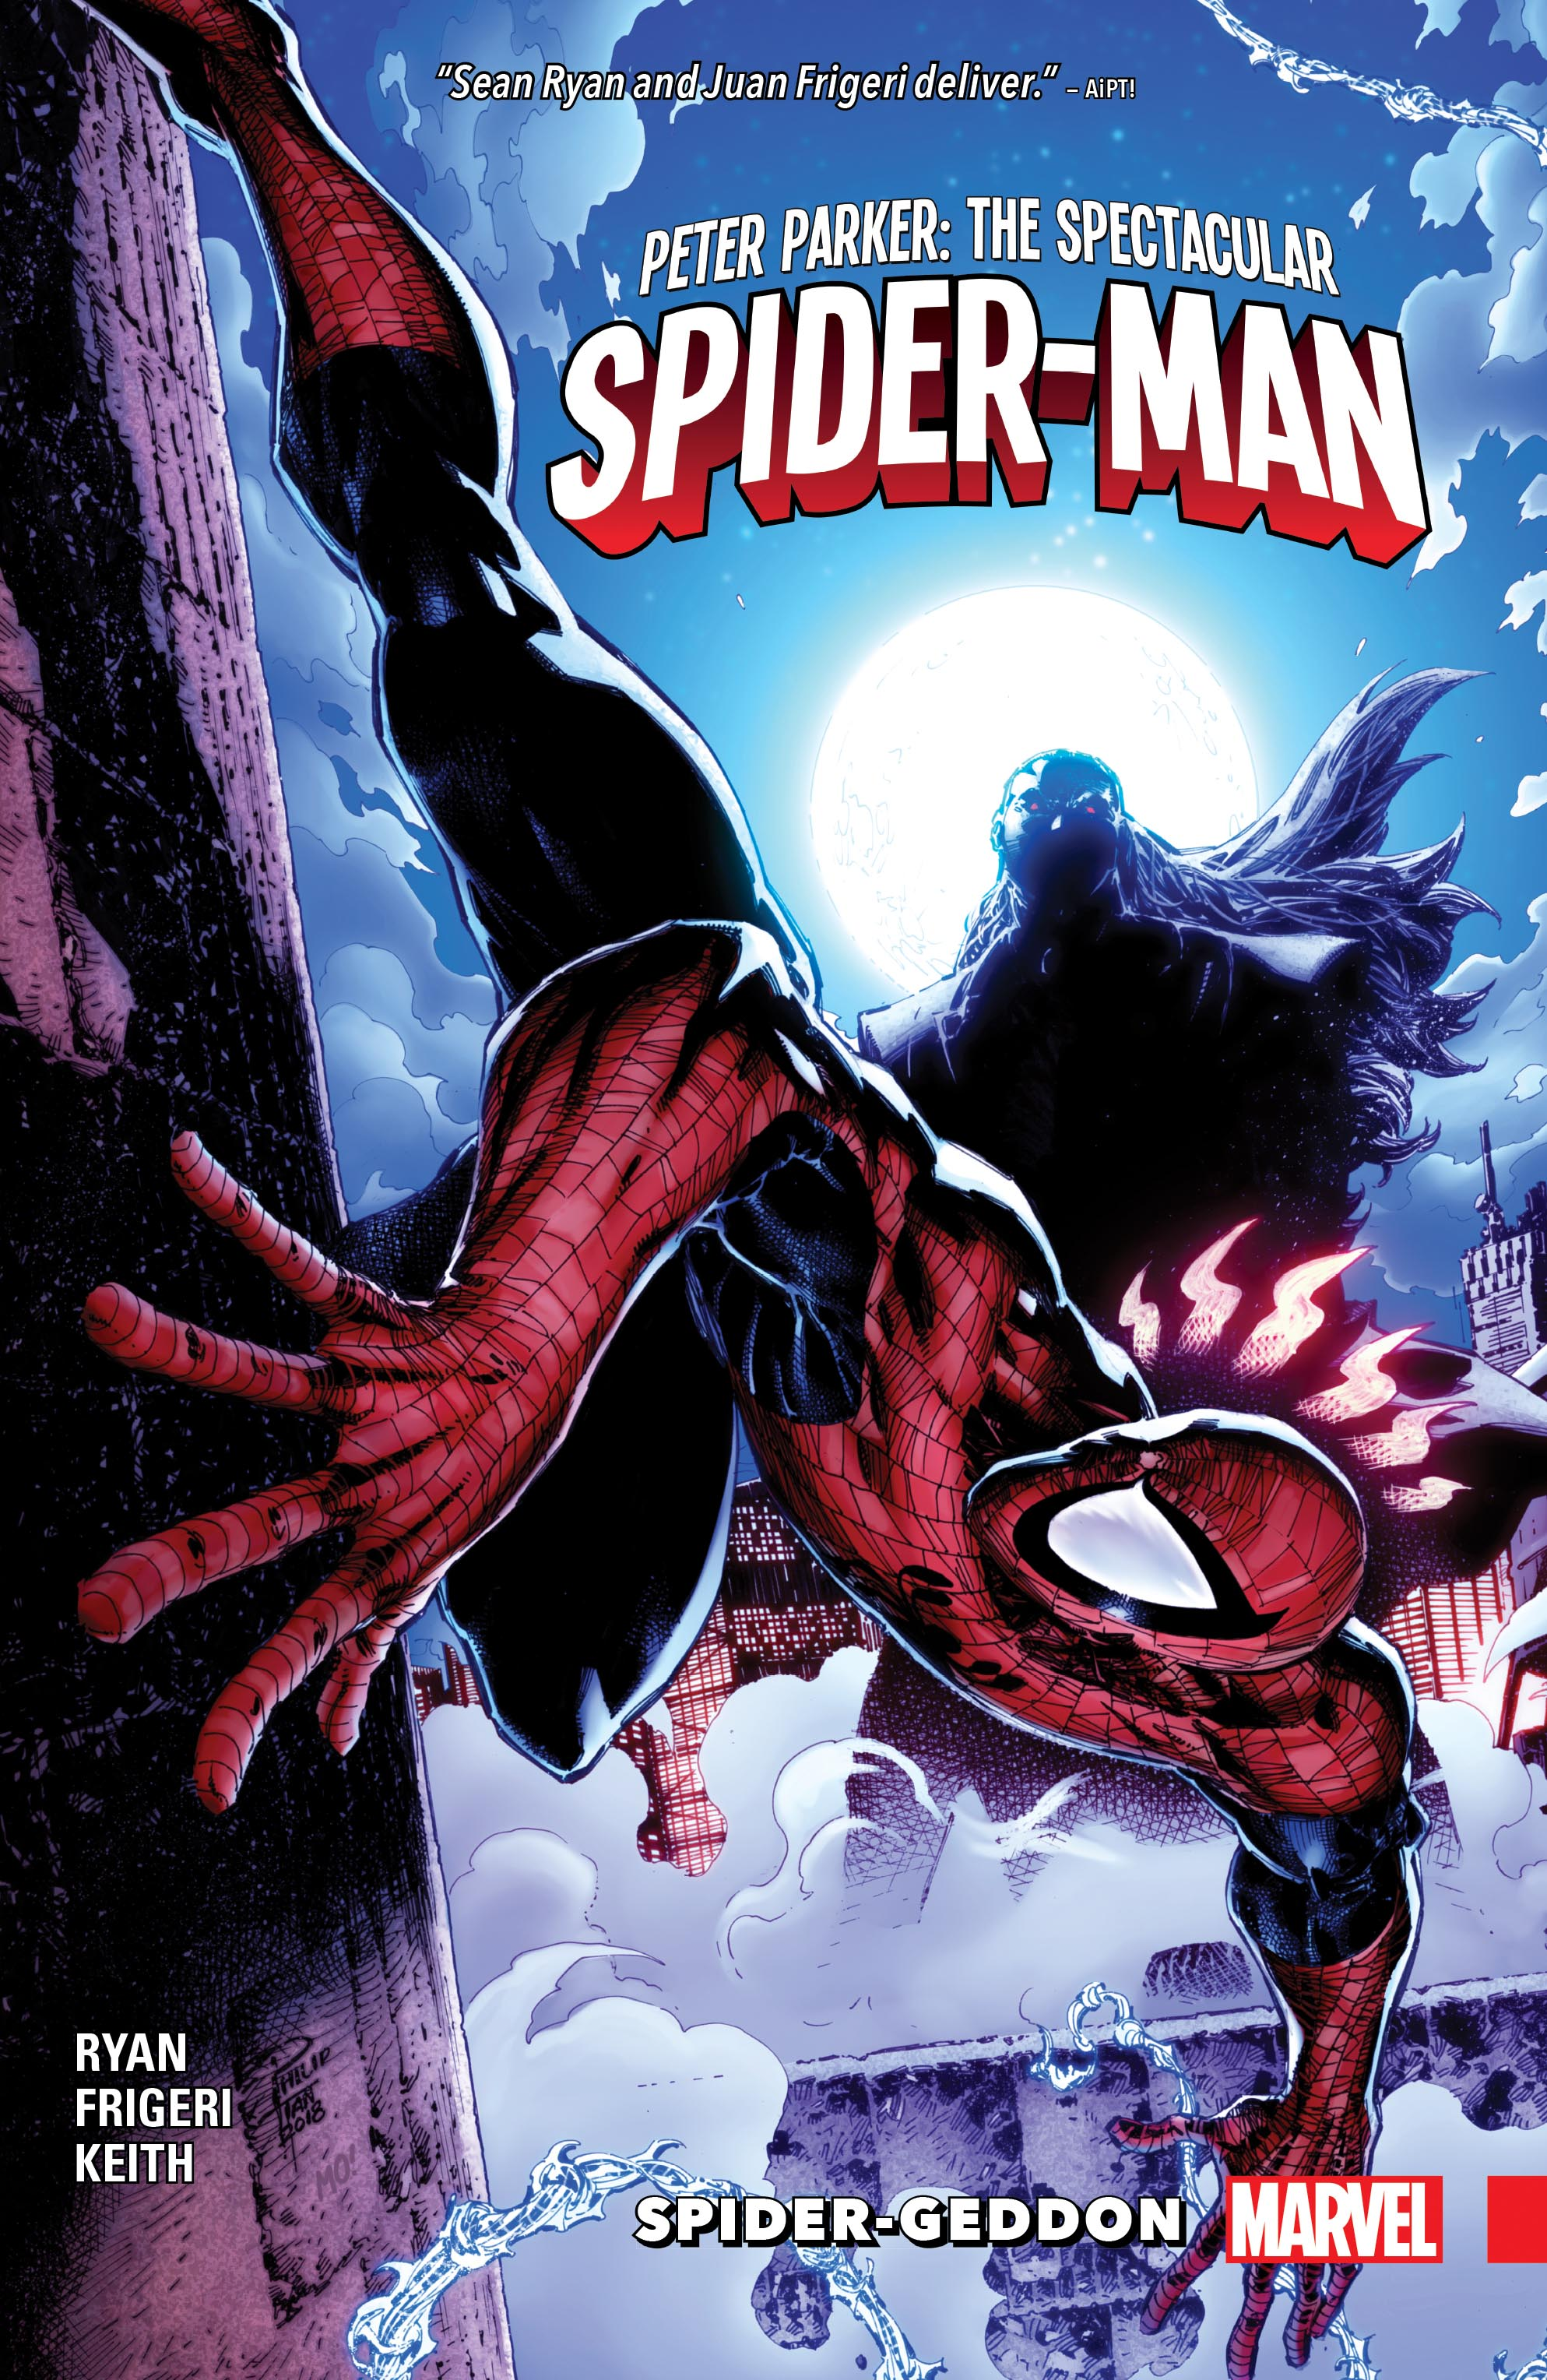 Peter Parker: The Spectacular Spider-Man Vol. 5 - Spider-Geddon (Trade Paperback)